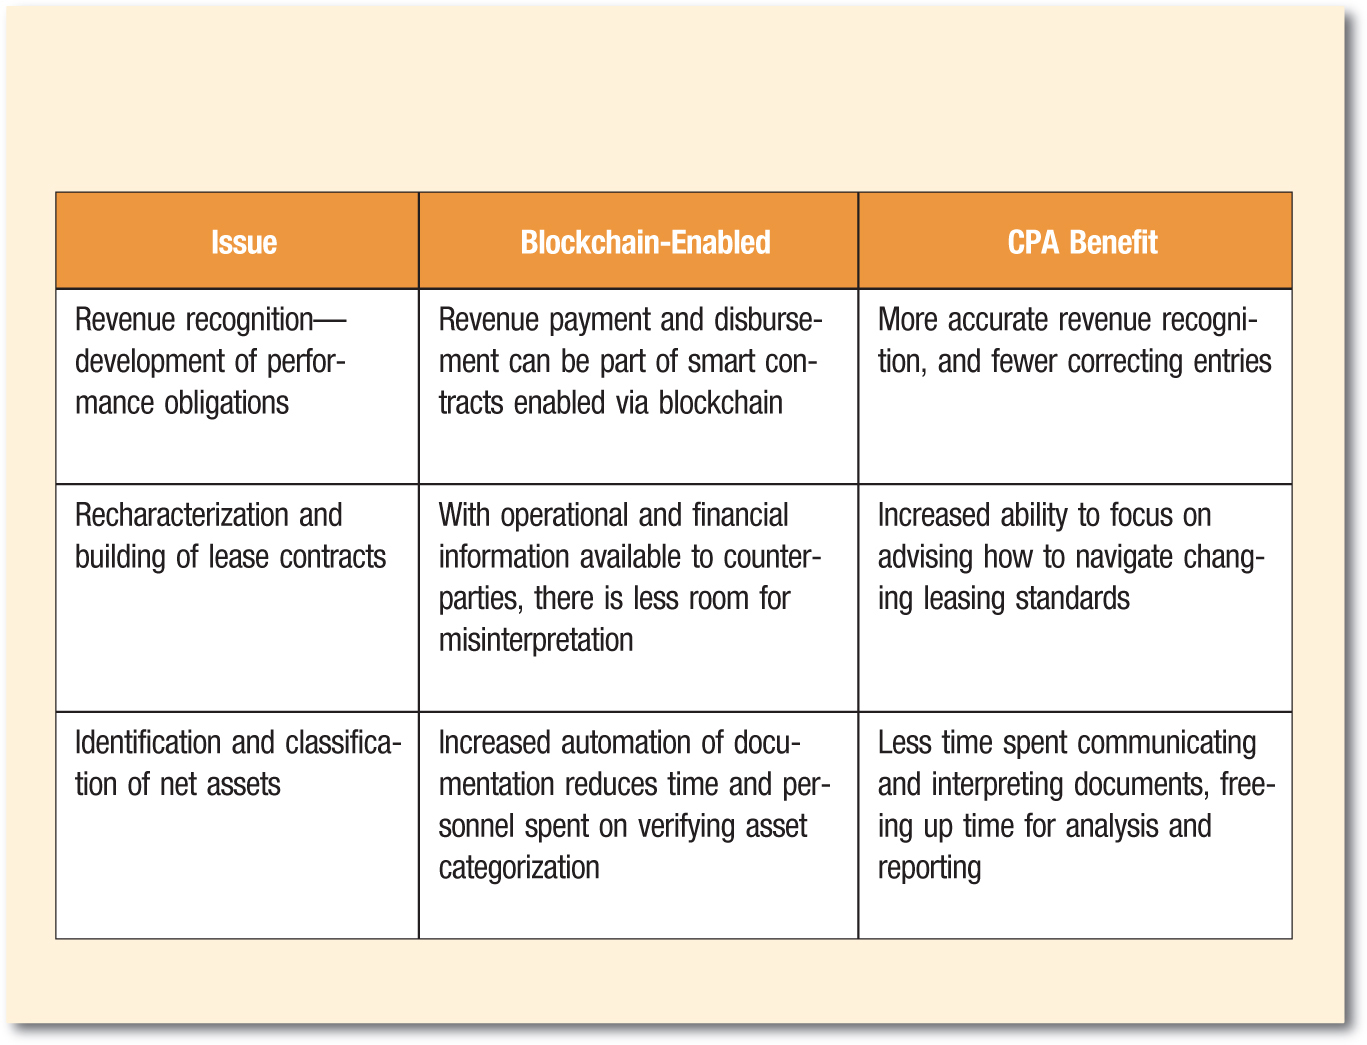 Issue; Blockchain-Enabled; CPA Benefit Revenue recognition—development of performance obligations; Revenue payment and disbursement can be part of smart contracts enabled via blockchain; More accurate revenue recognition, and fewer correcting entries Recharacterization and building of lease contracts; With operational and financial information available to counter-parties, there is less room for misinterpretation; Increased ability to focus on advising how to navigate changing leasing standards Identification and classification of net assets; Increased automation of documentation reduces time and personnel spent on verifying asset categorization; Less time spent communicating and interpreting documents, freeing up time for analysis and reporting